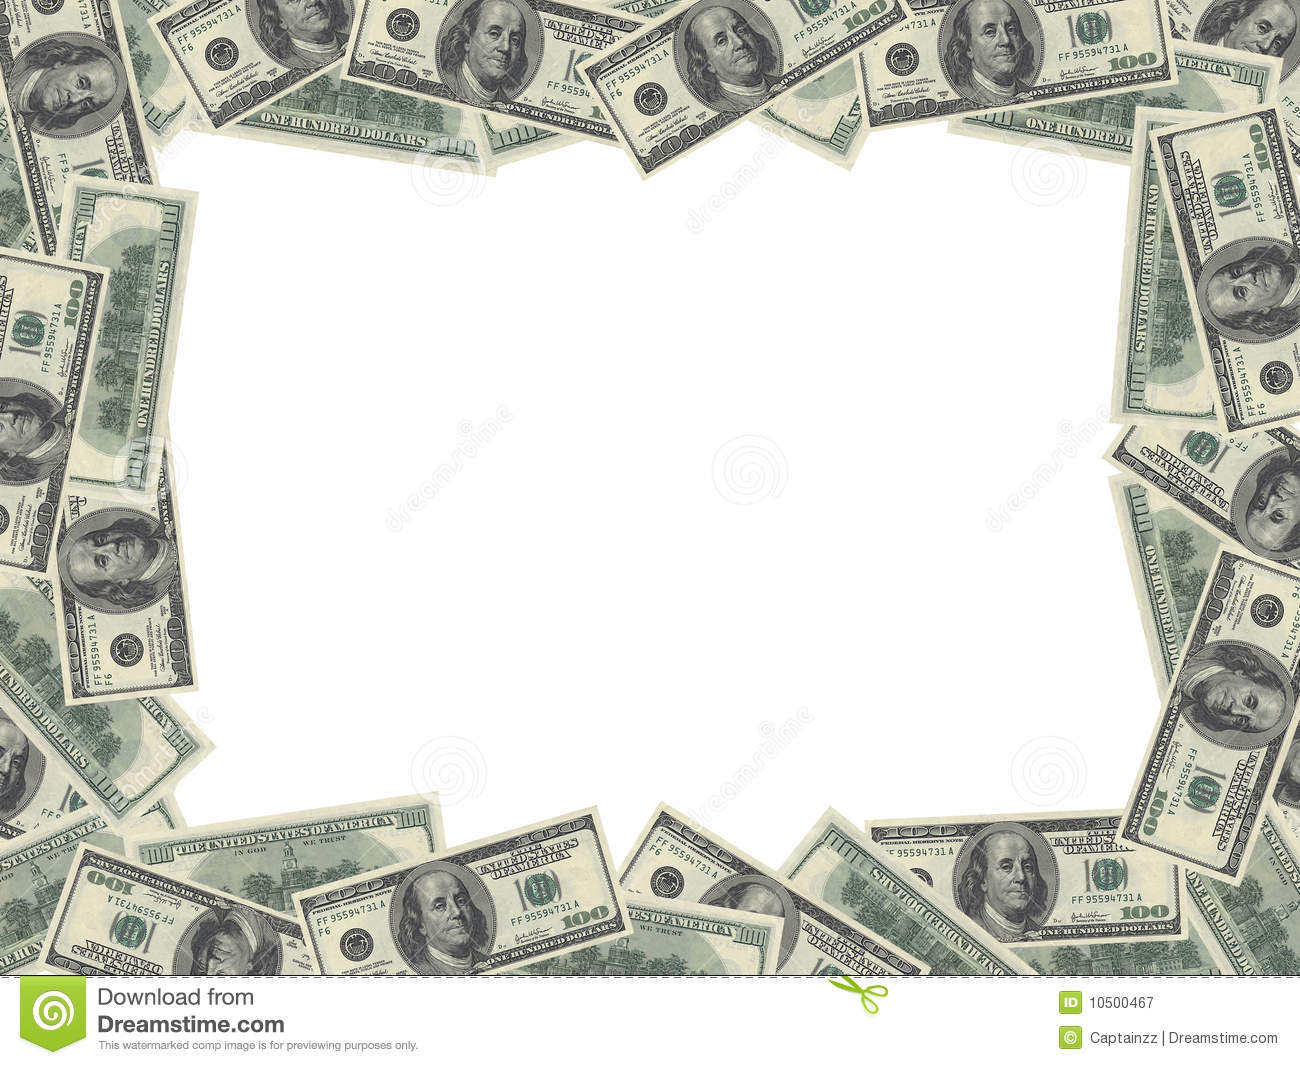 Royalty Free Stock Photography: Dollar bills frame. Image: 10500467